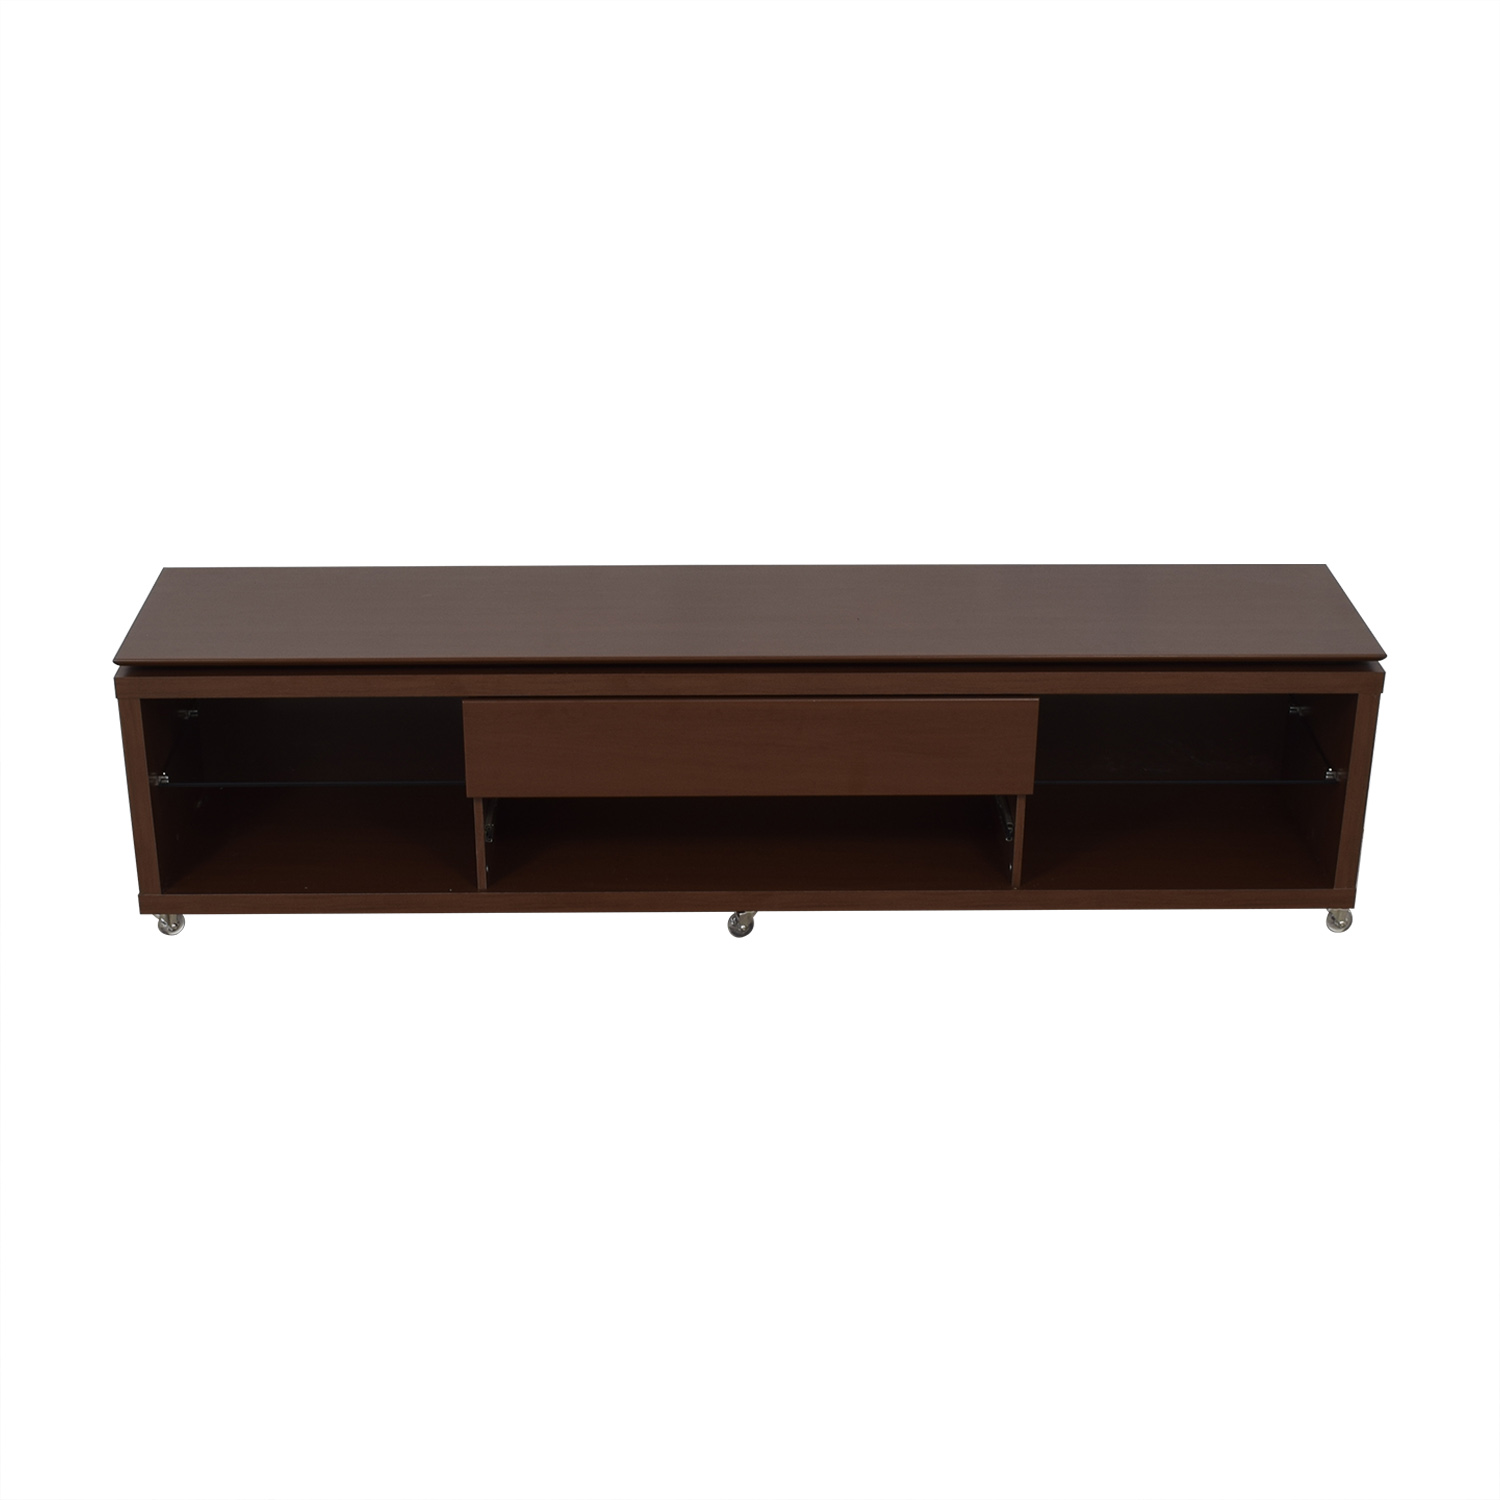 Bed Bath & Beyond Bed Bath & Beyond Manhattan Comfort Lincoln Media Stand discount